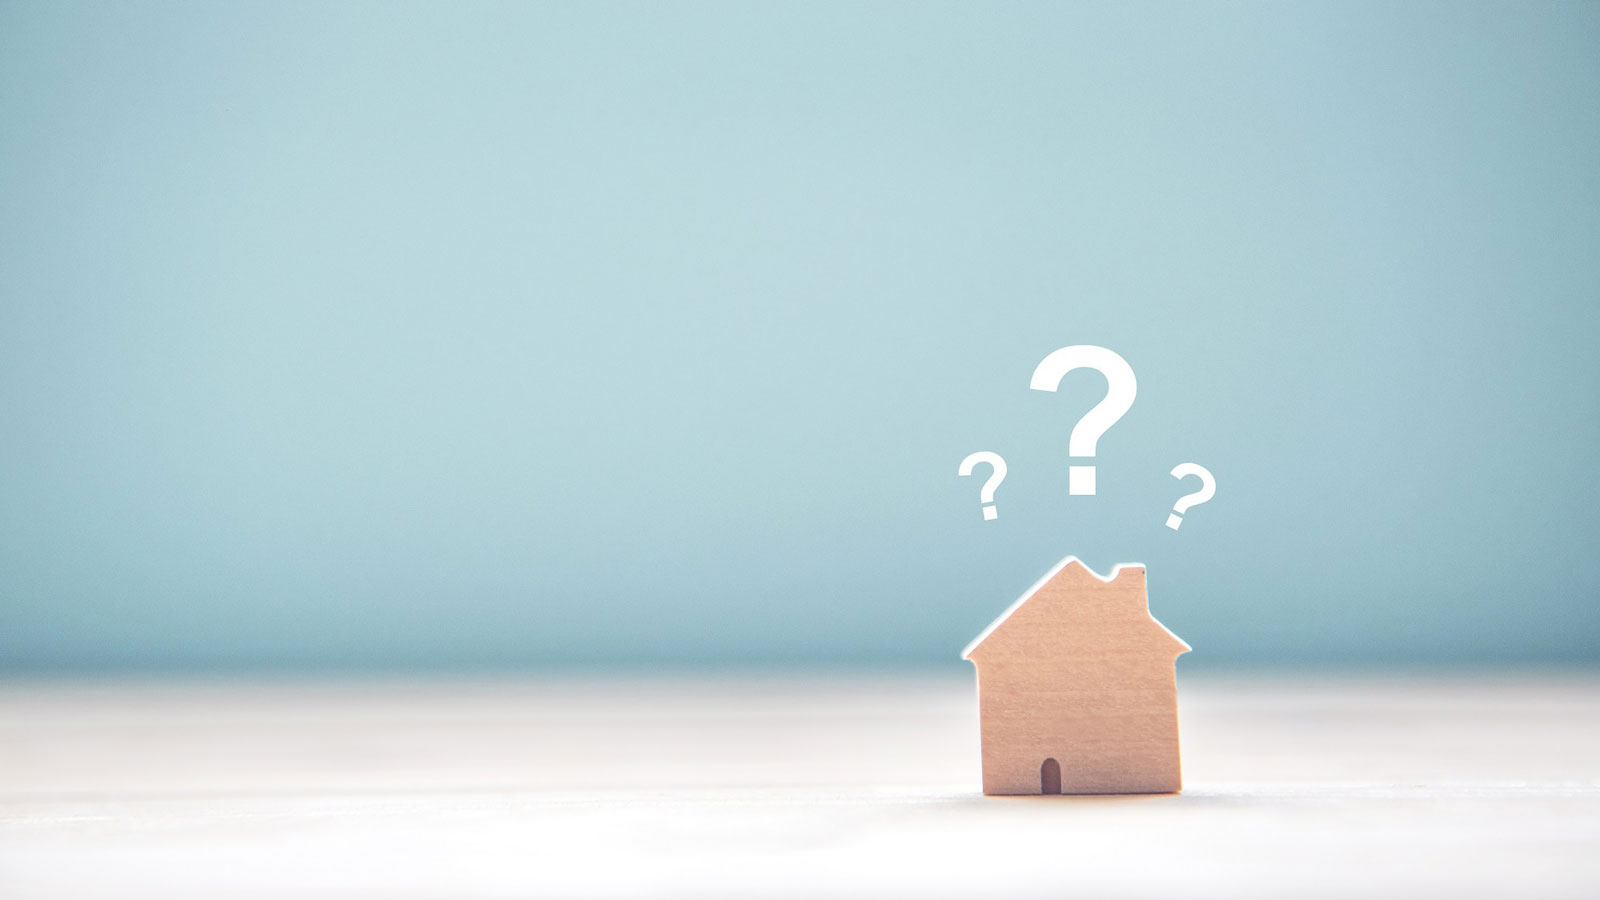 The most important questions to ask when buying a house